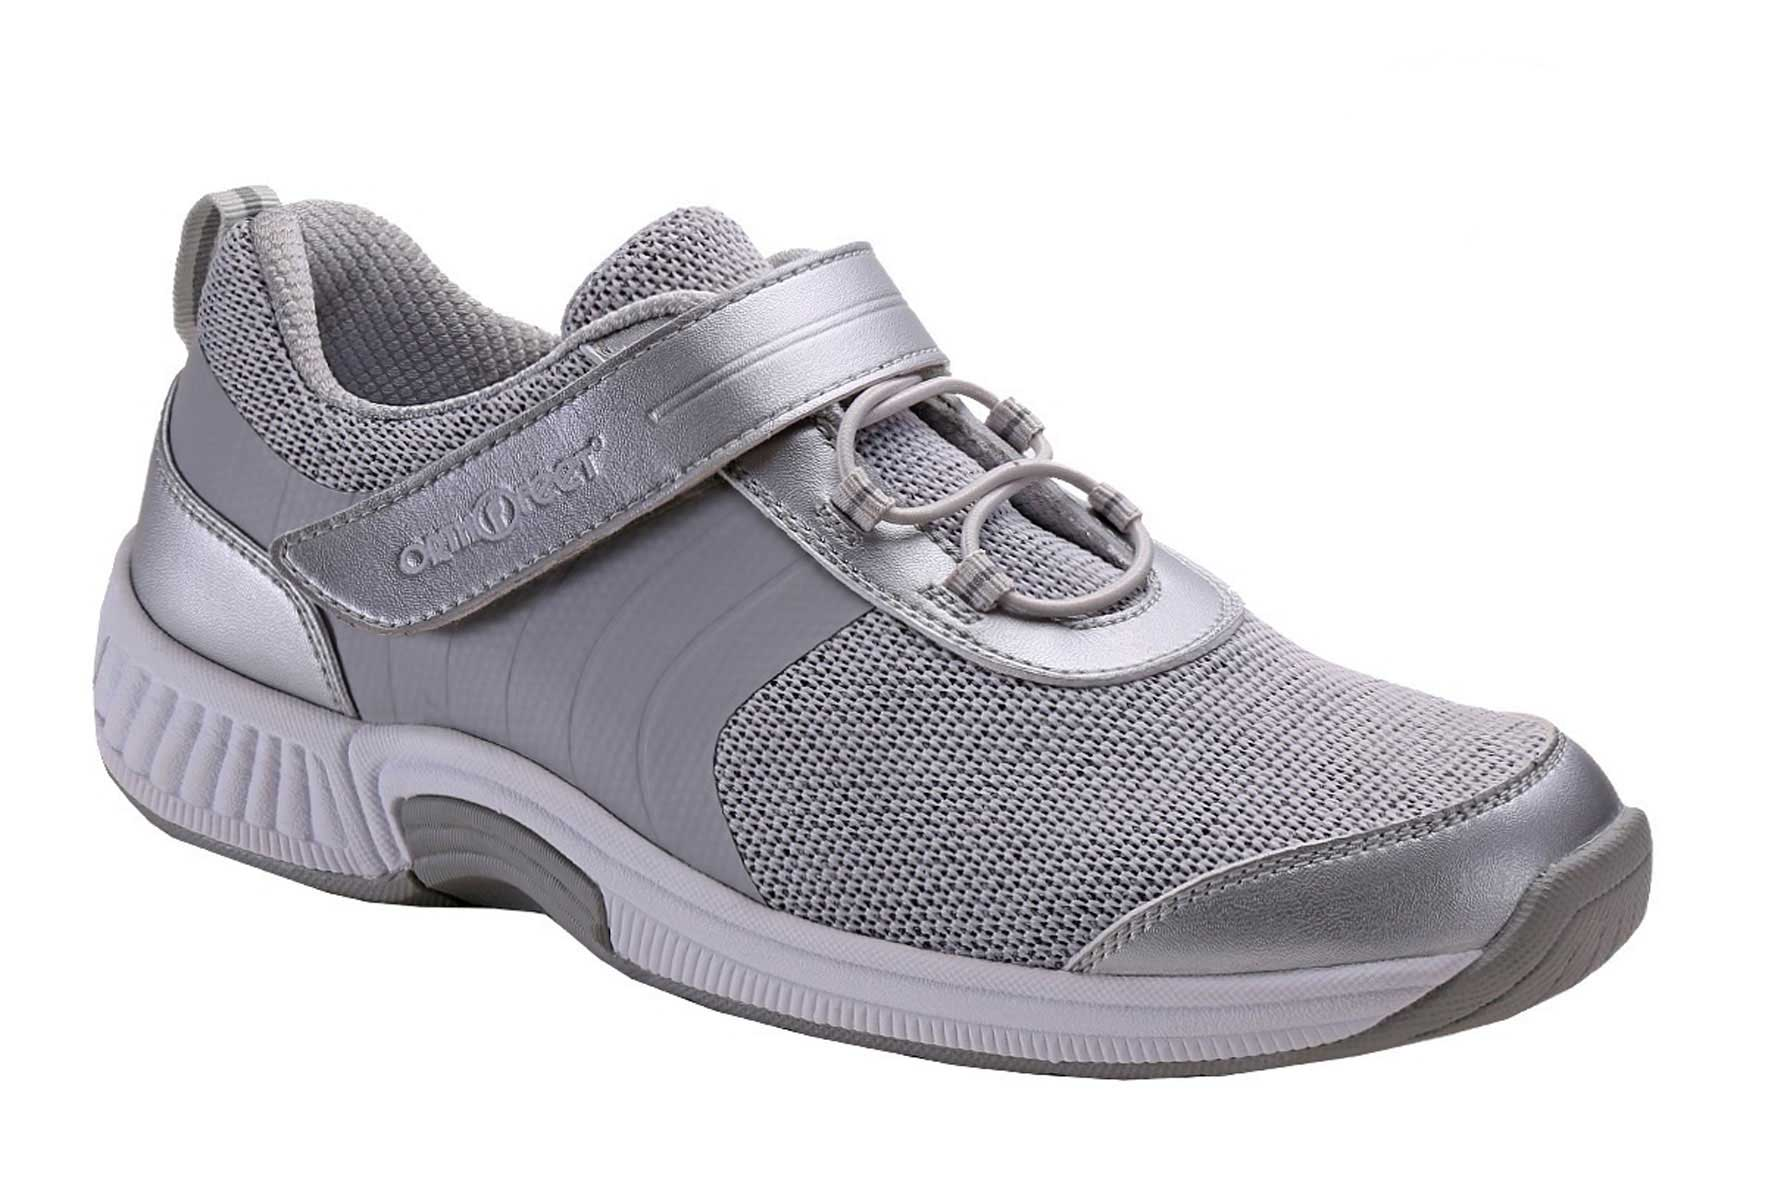 235c6a130227 Orthofeet Shoes Joelle -832 - Women s Comfort Therapeutic Diabetic Shoe -  Stretchable Casual and Dress - Medium - Extra Wide - Extra Depth for  Orthotics